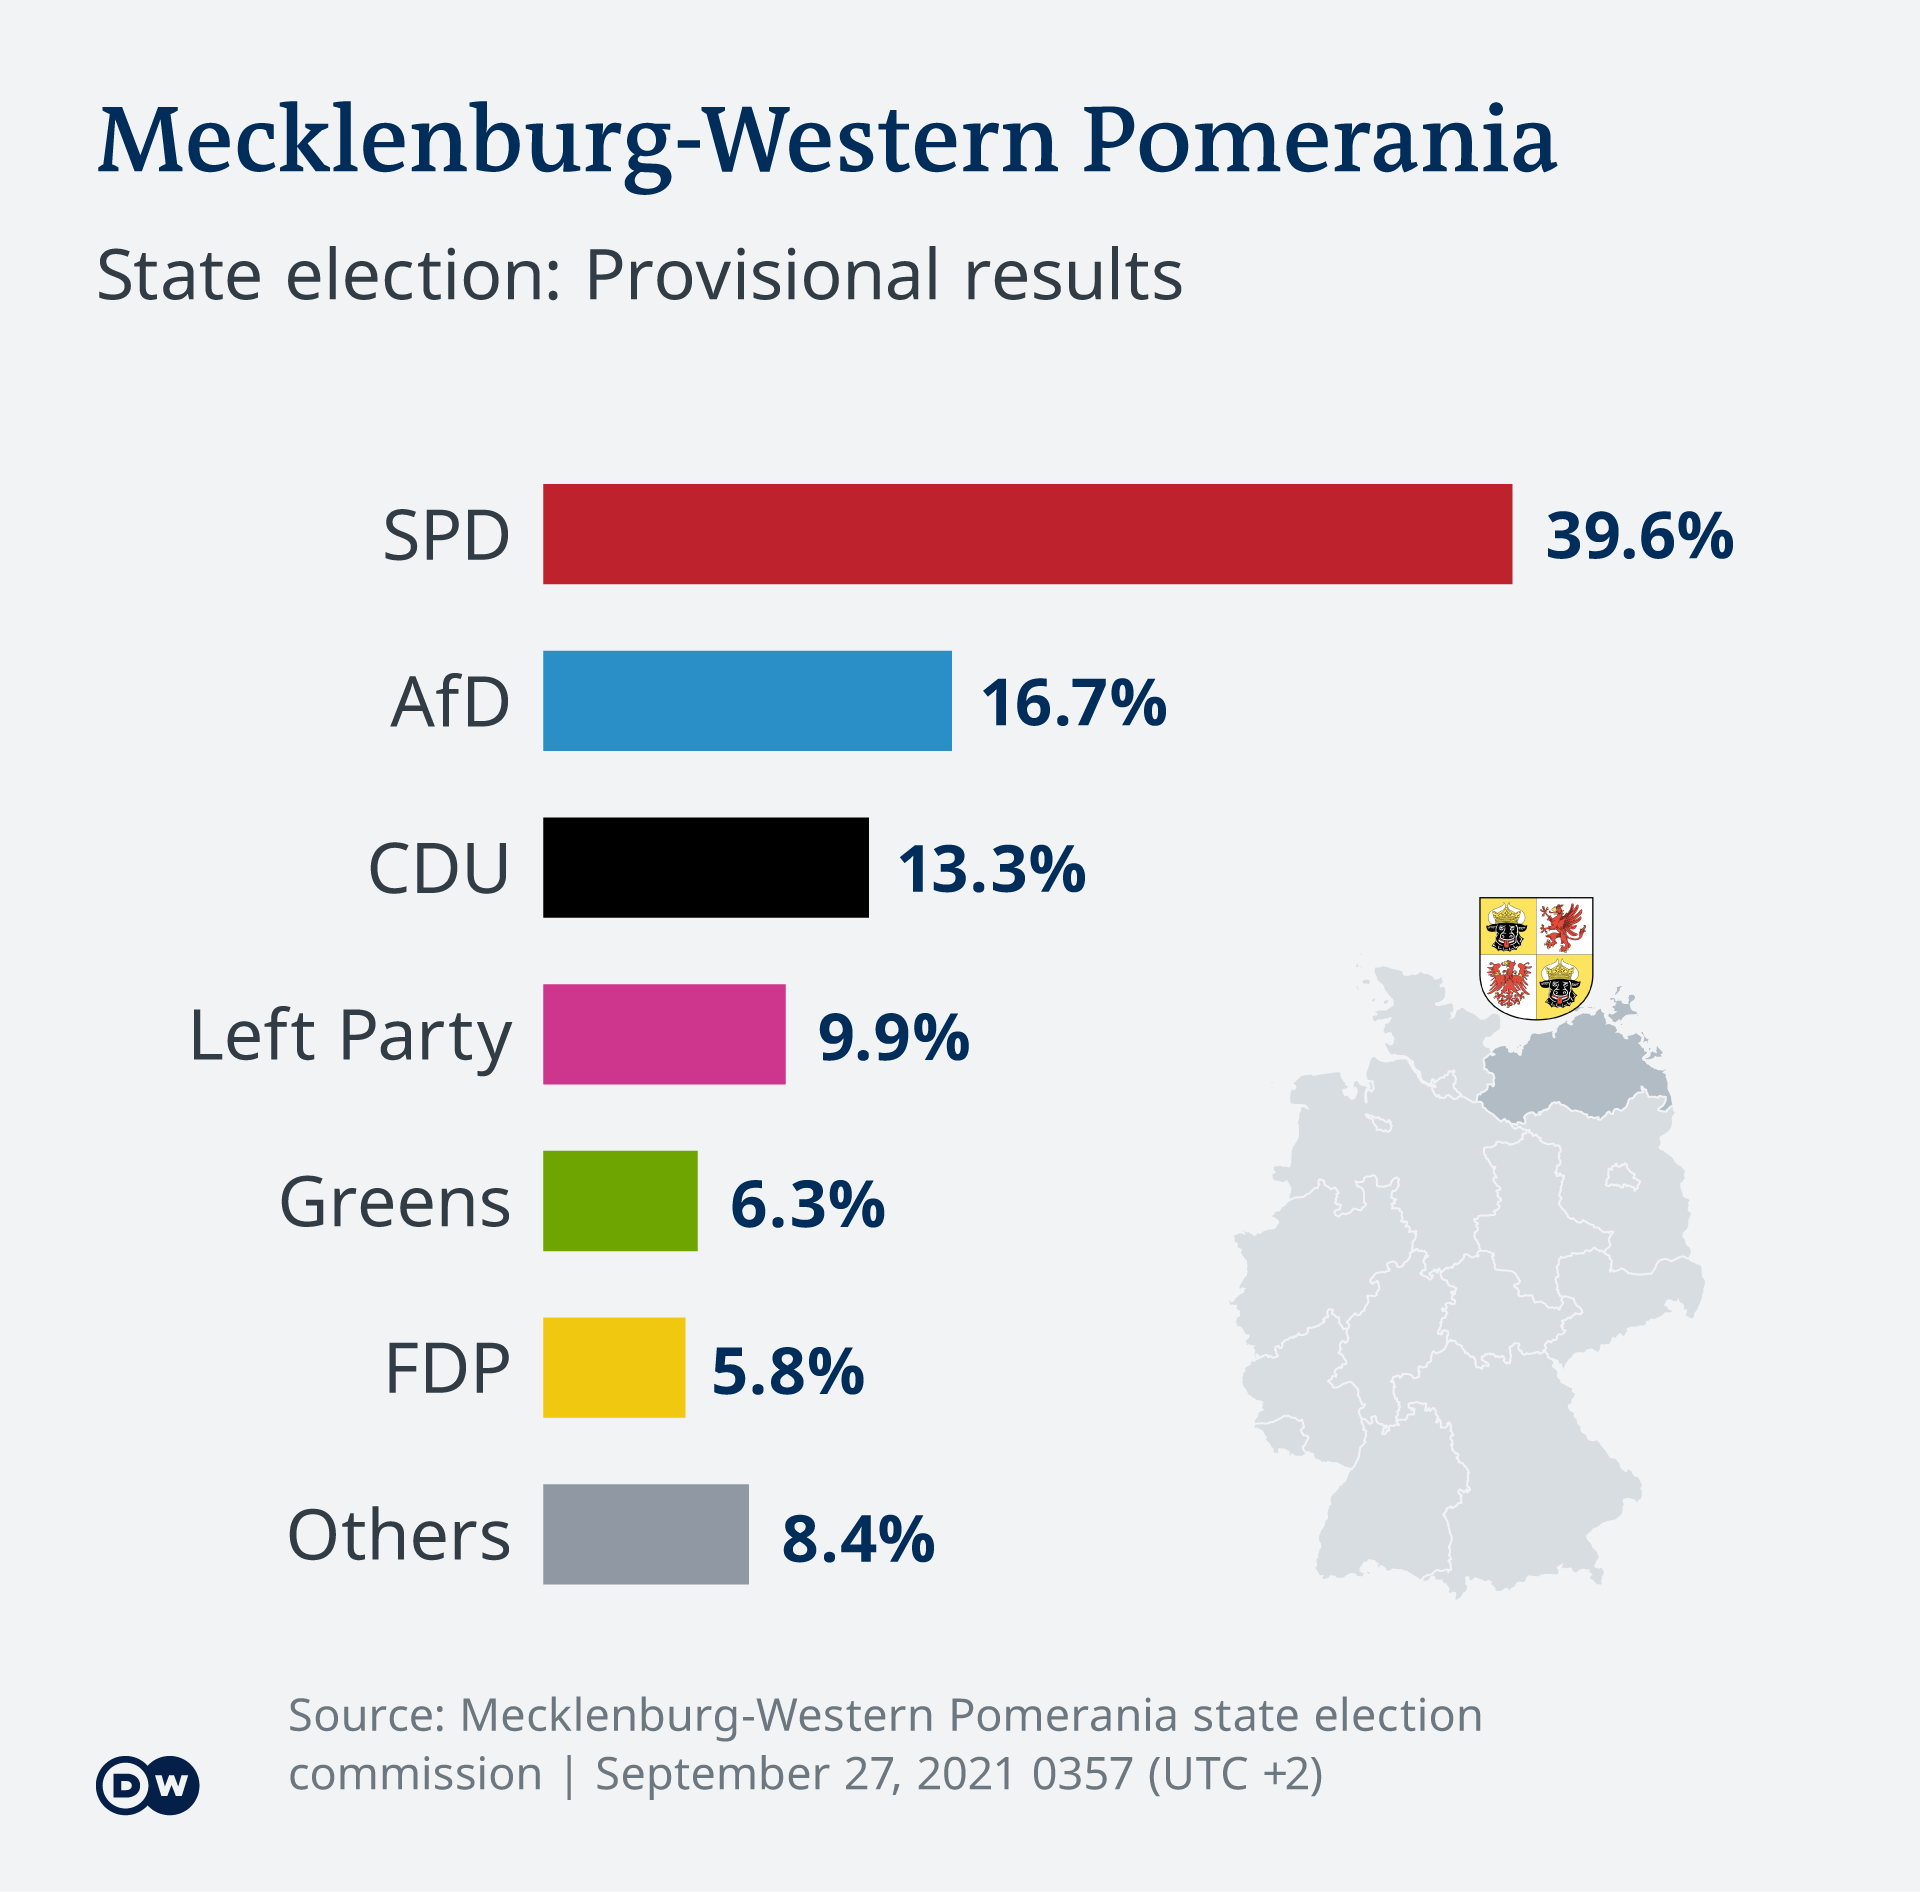 Infographic showing the results of the state parliament election in Mecklenburg-Western Pomerania